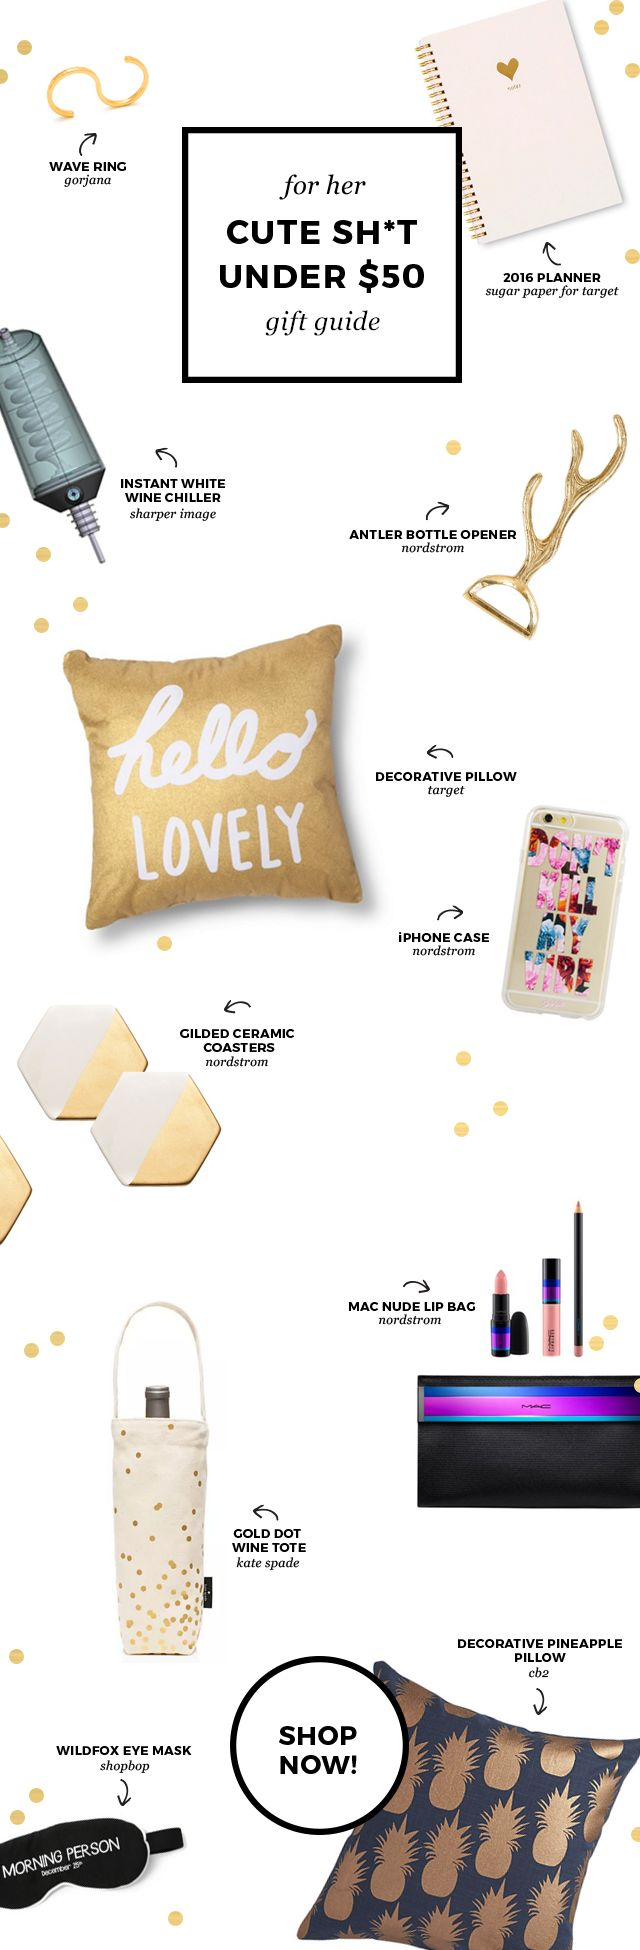 Gift Guide: cute, budget friendly items for her